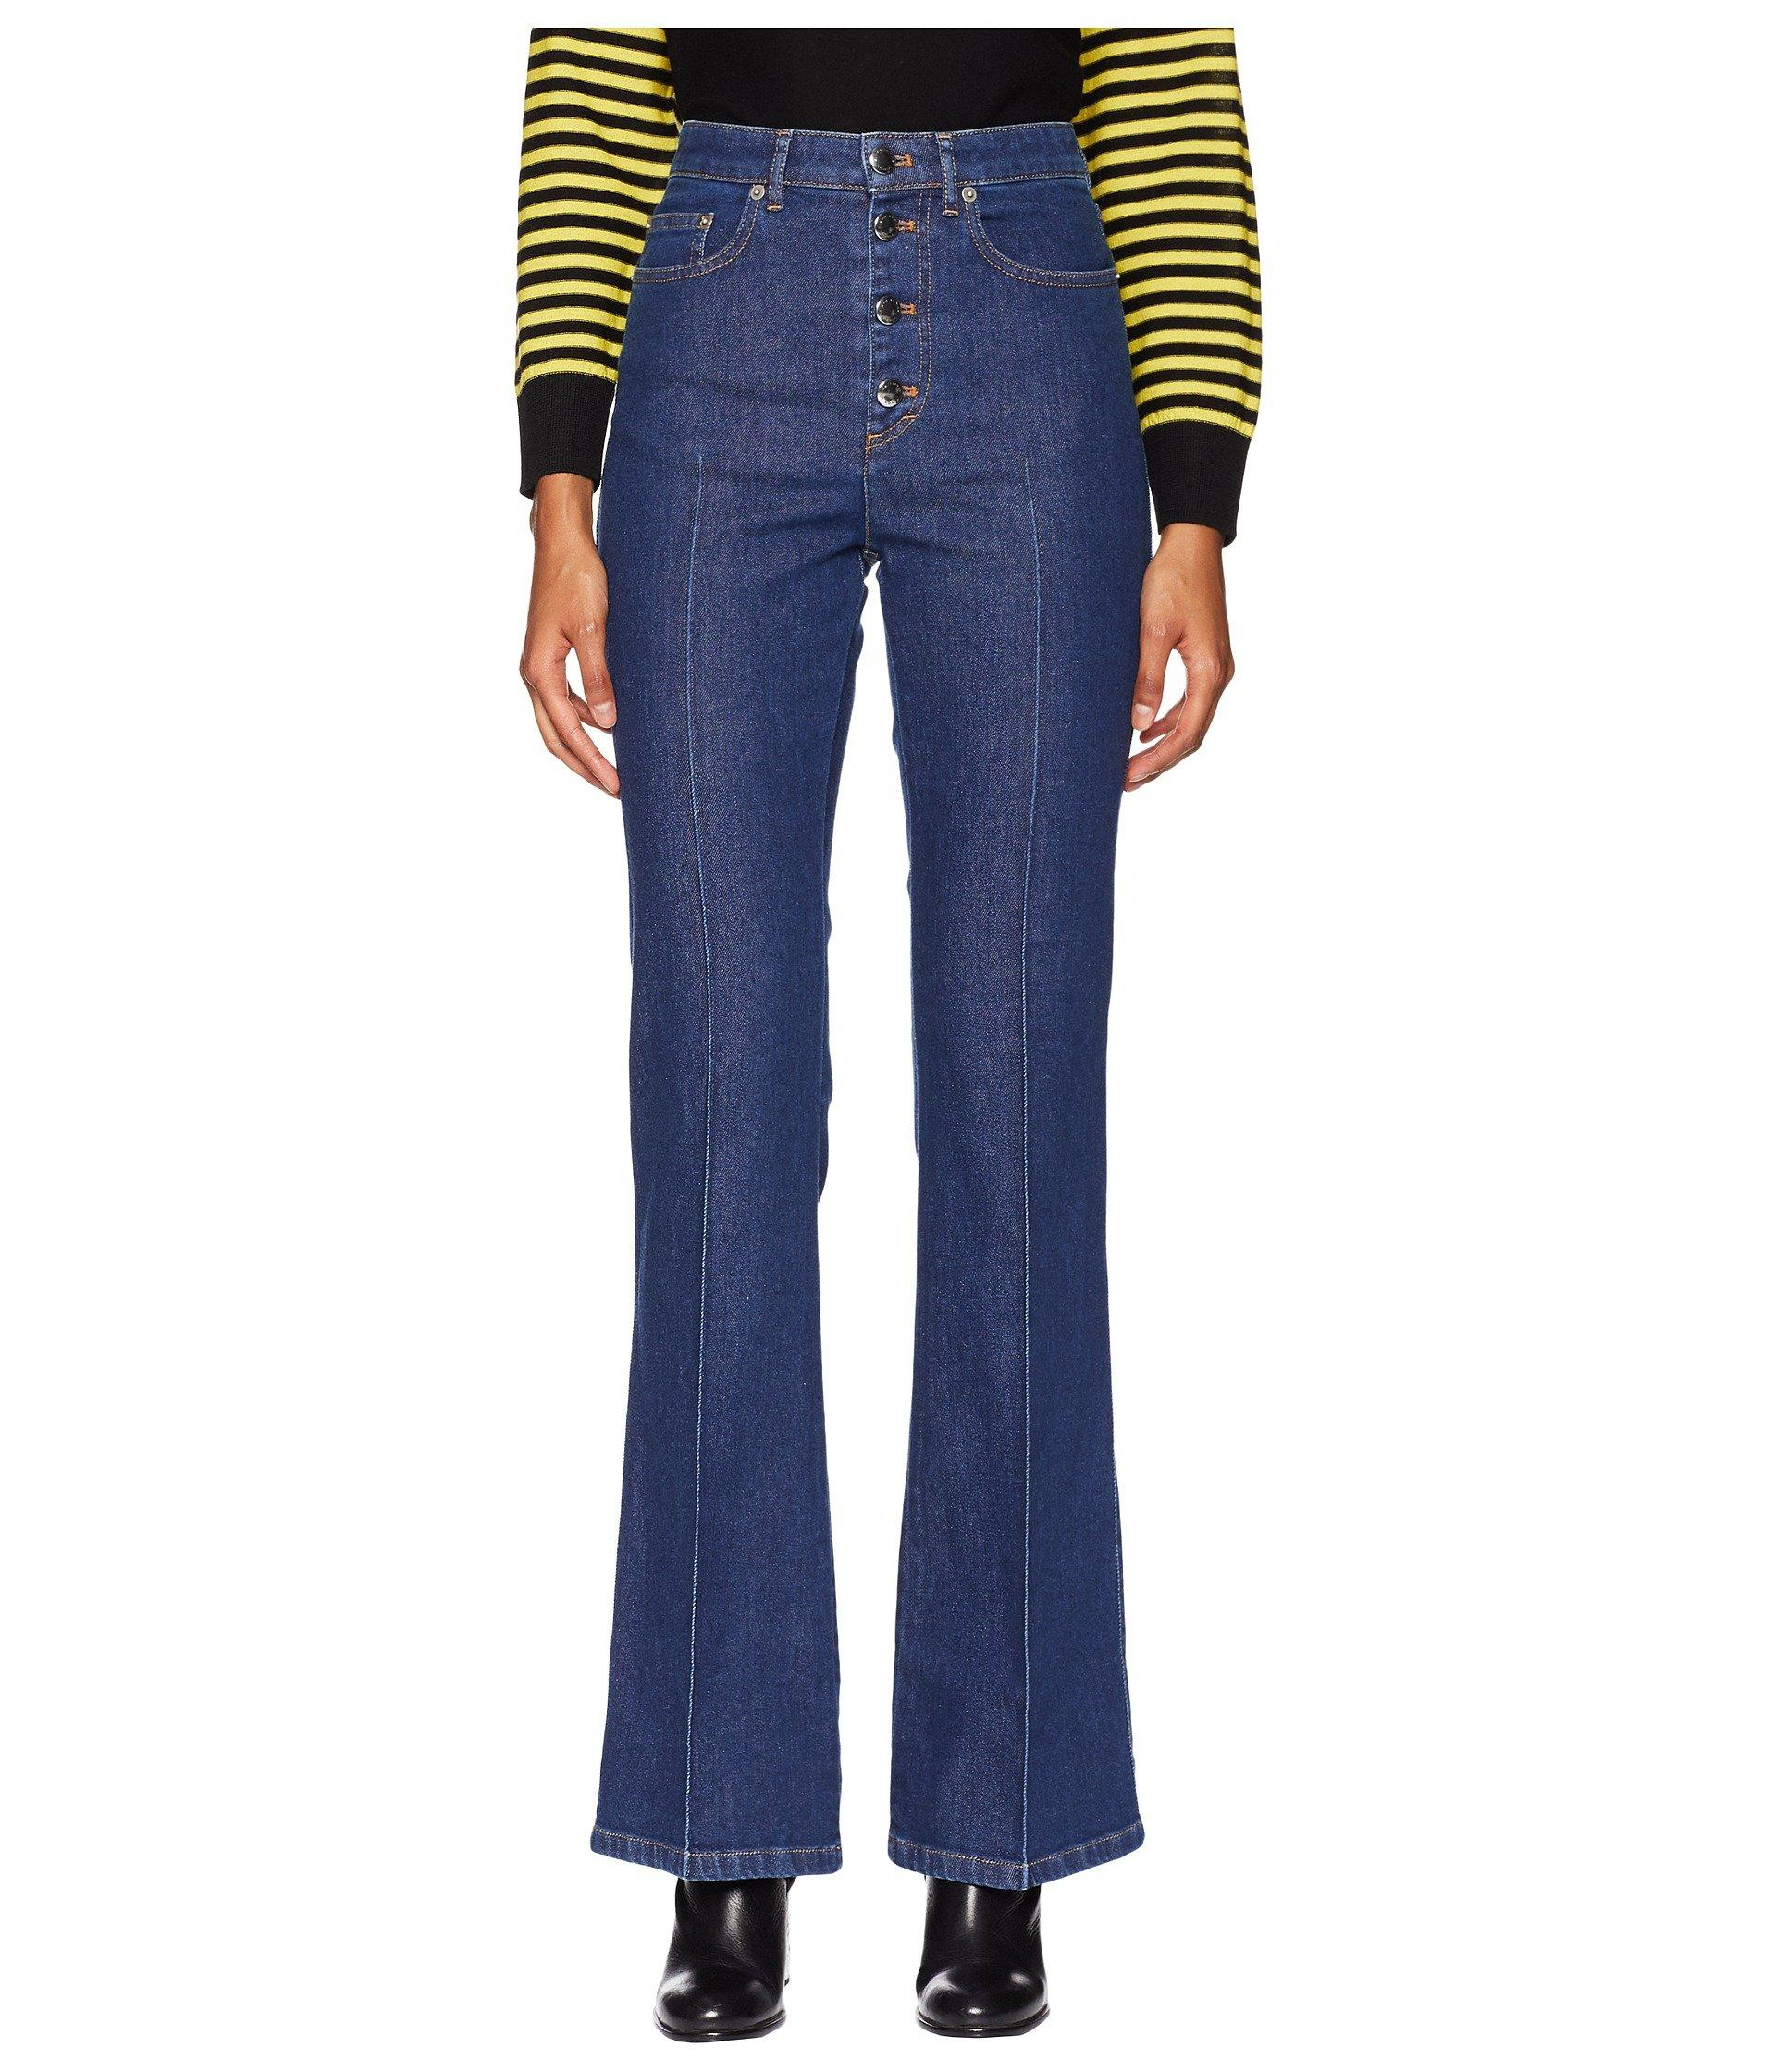 8fd6b51c4d Lyst - Sonia Rykiel Stretch High-waisted Button Up Flare Jeans in Blue